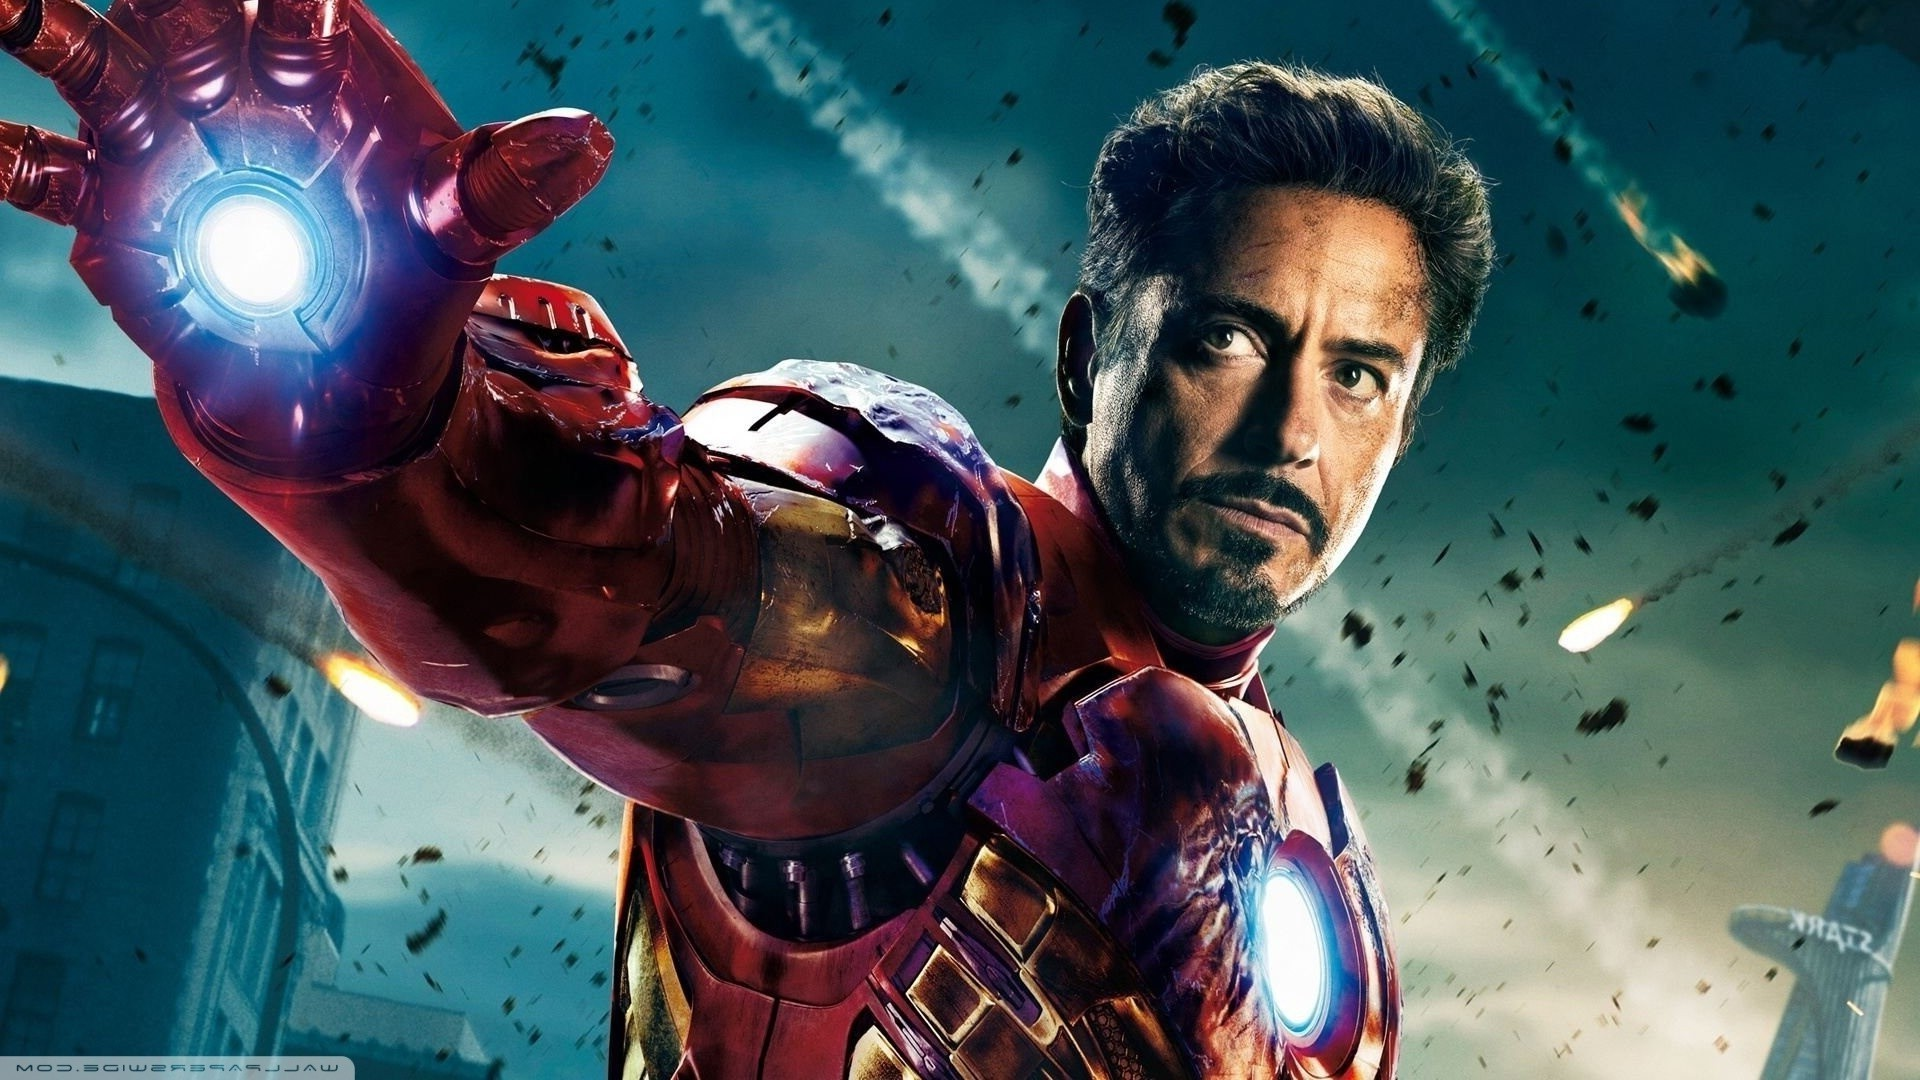 robert downey jr iron man wallpaper ·①